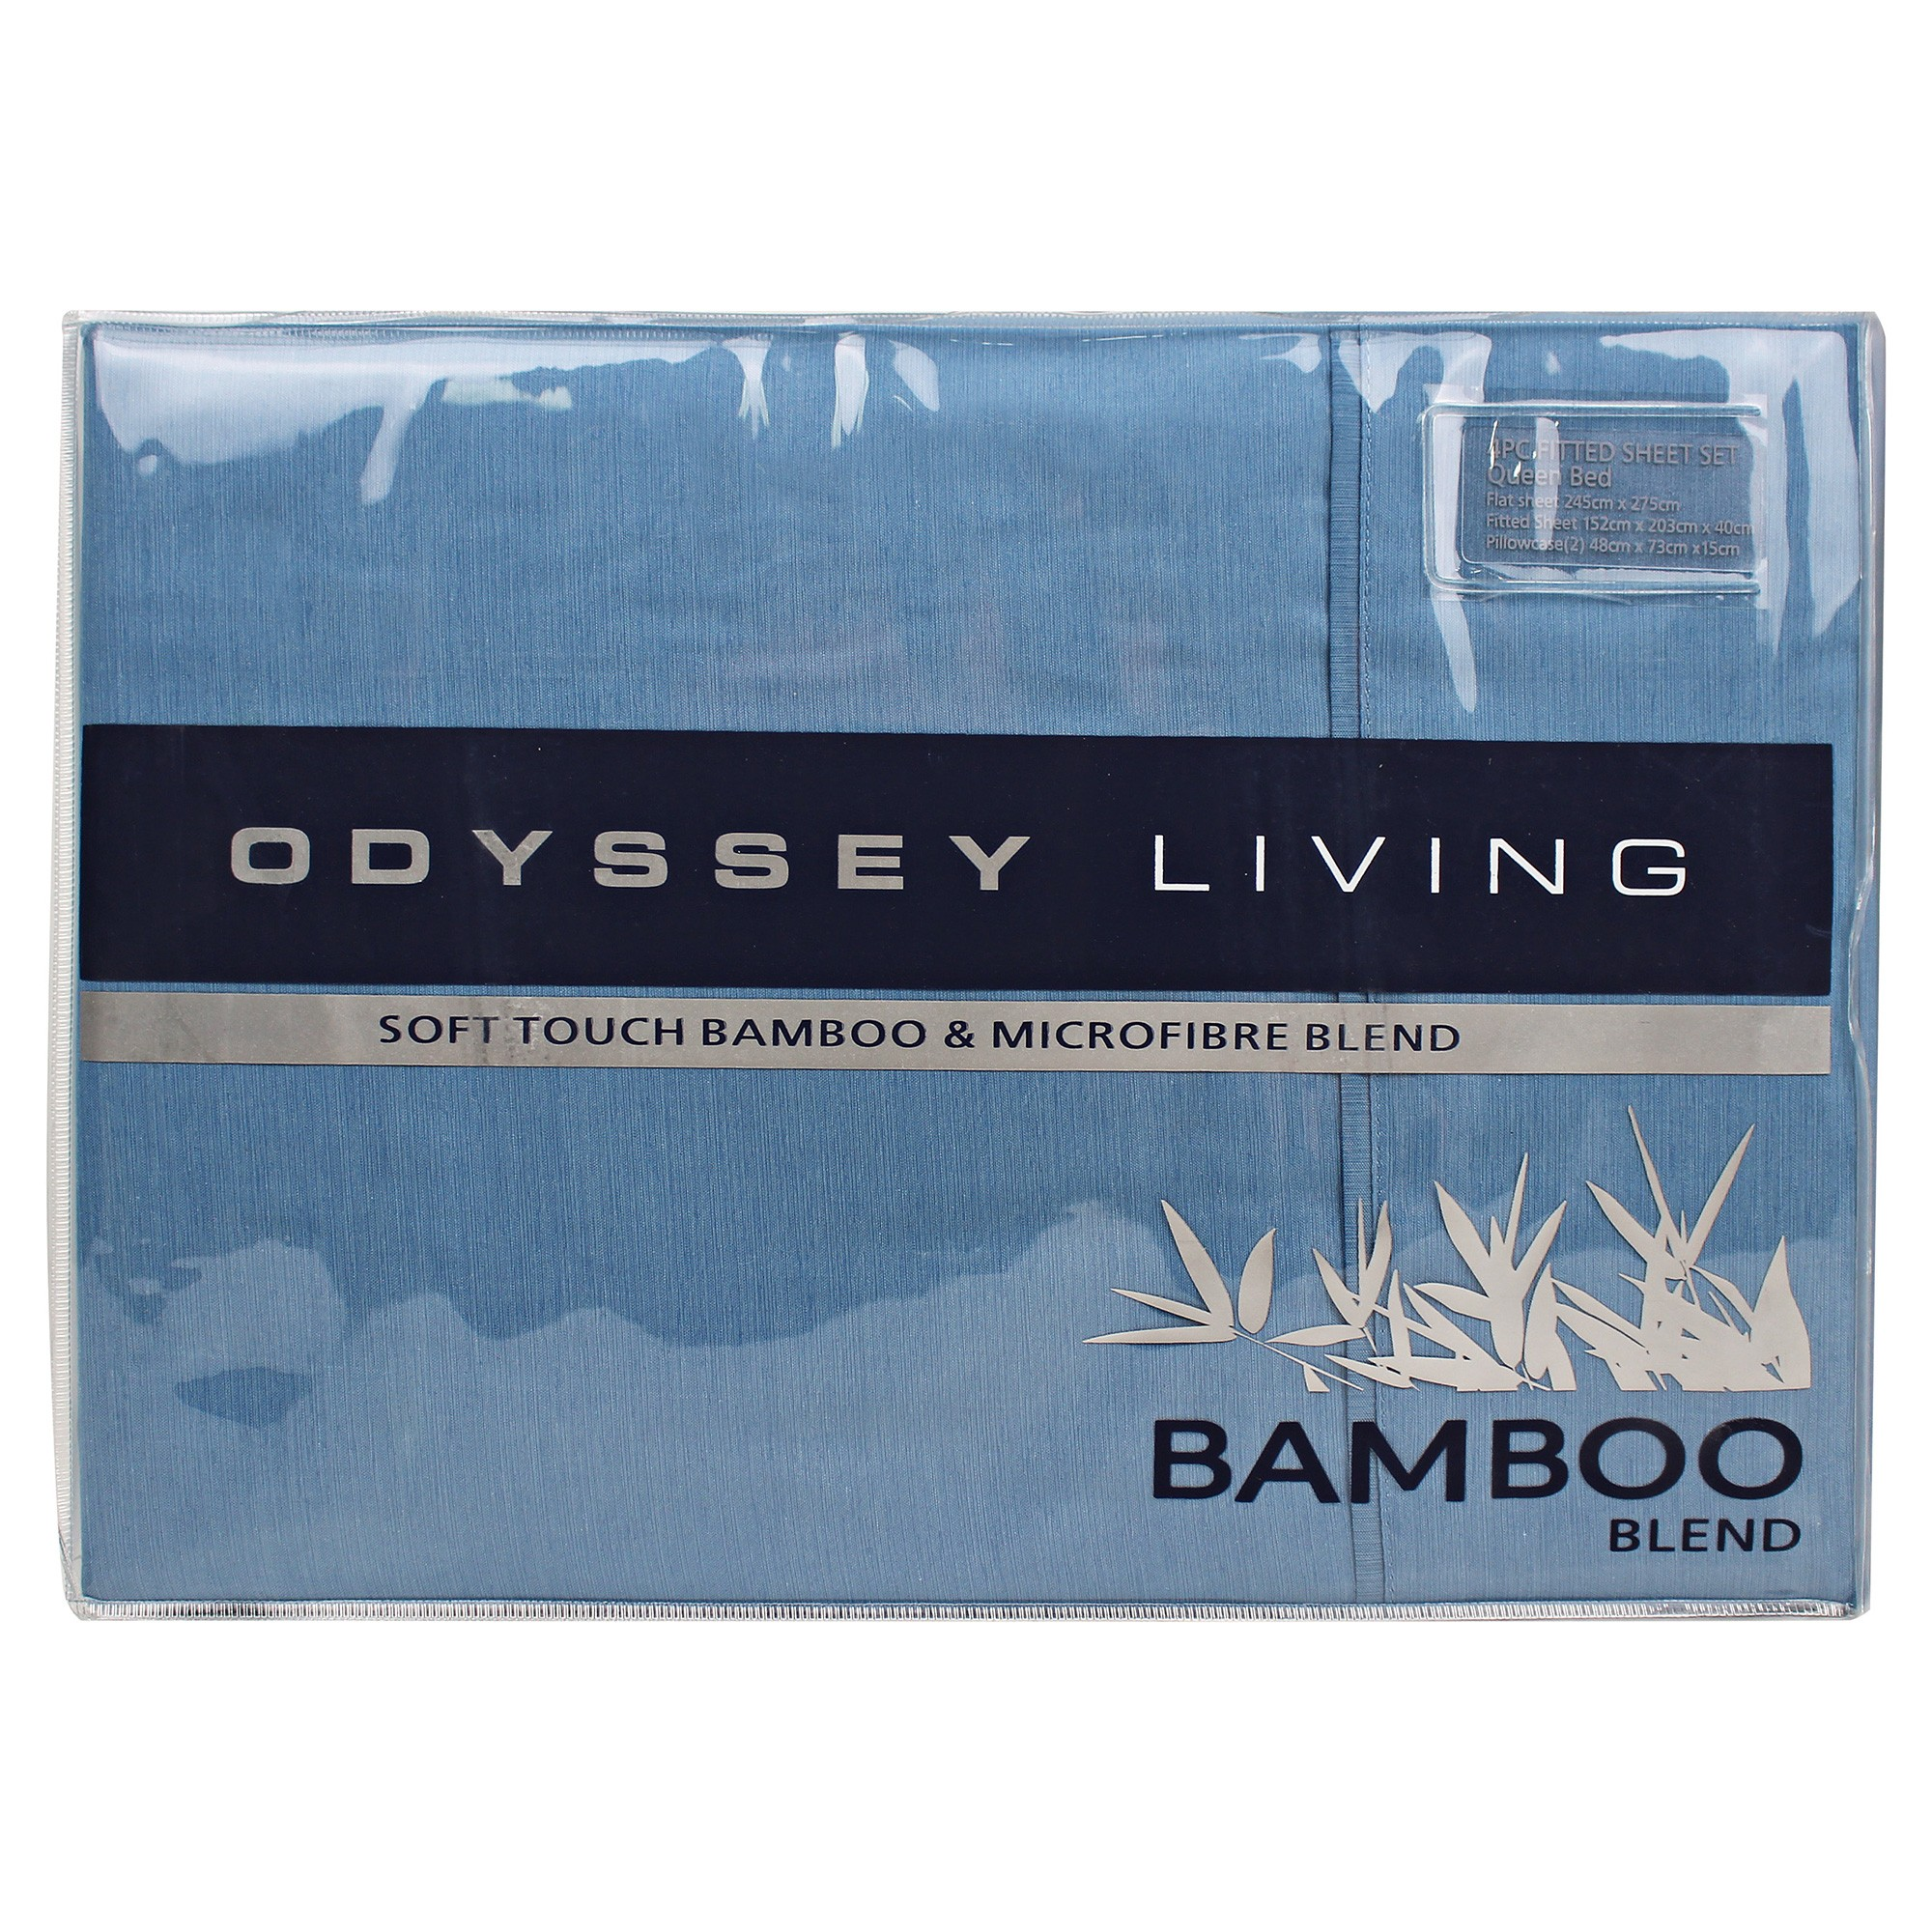 Odyssey Living Soft Touch Bamboo & Microfibre Blend Sheet Set, King, Sterling Blue